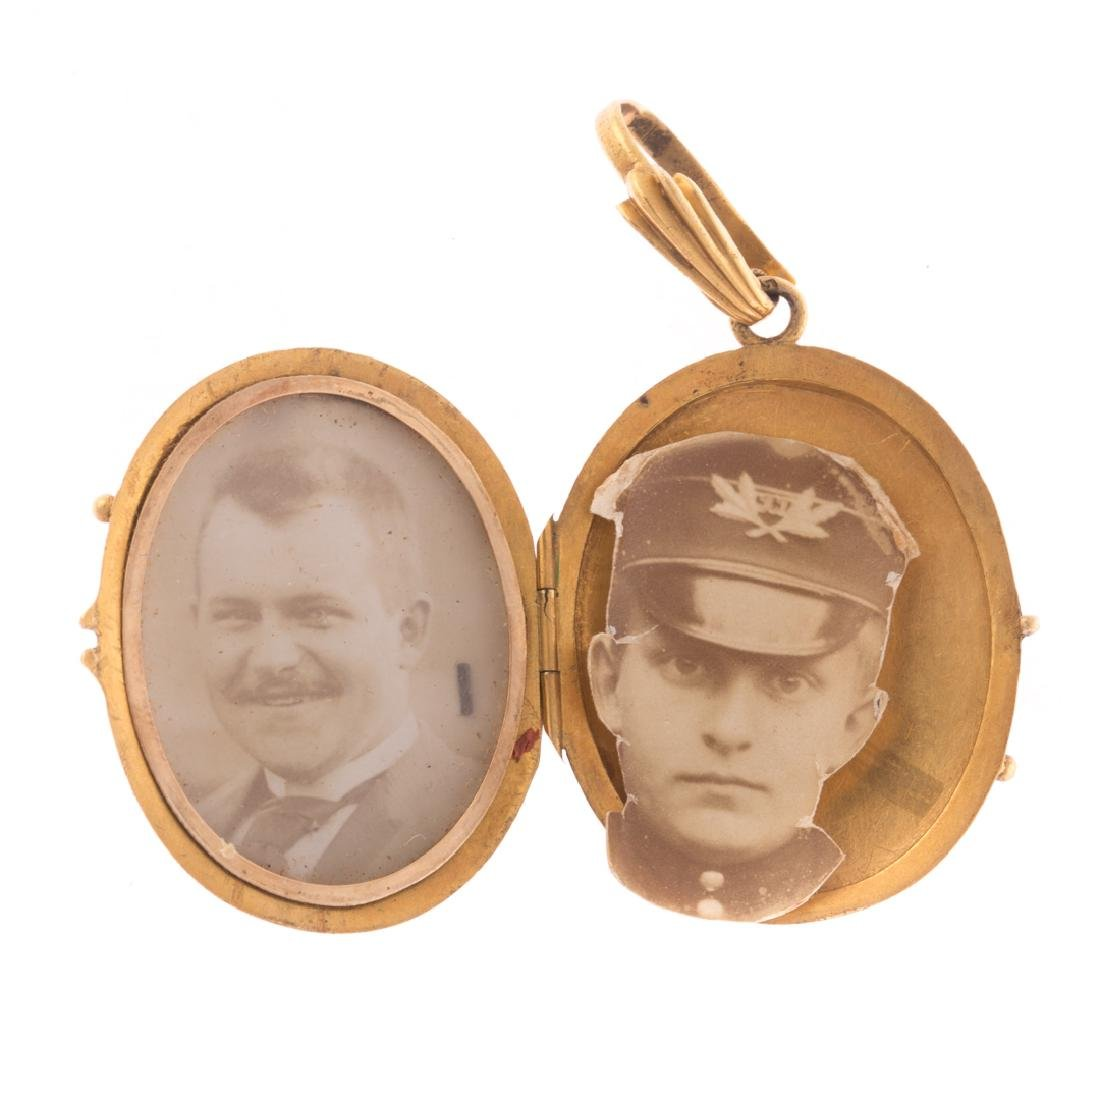 A Pair of Lockets Accompanied by Chains - 4